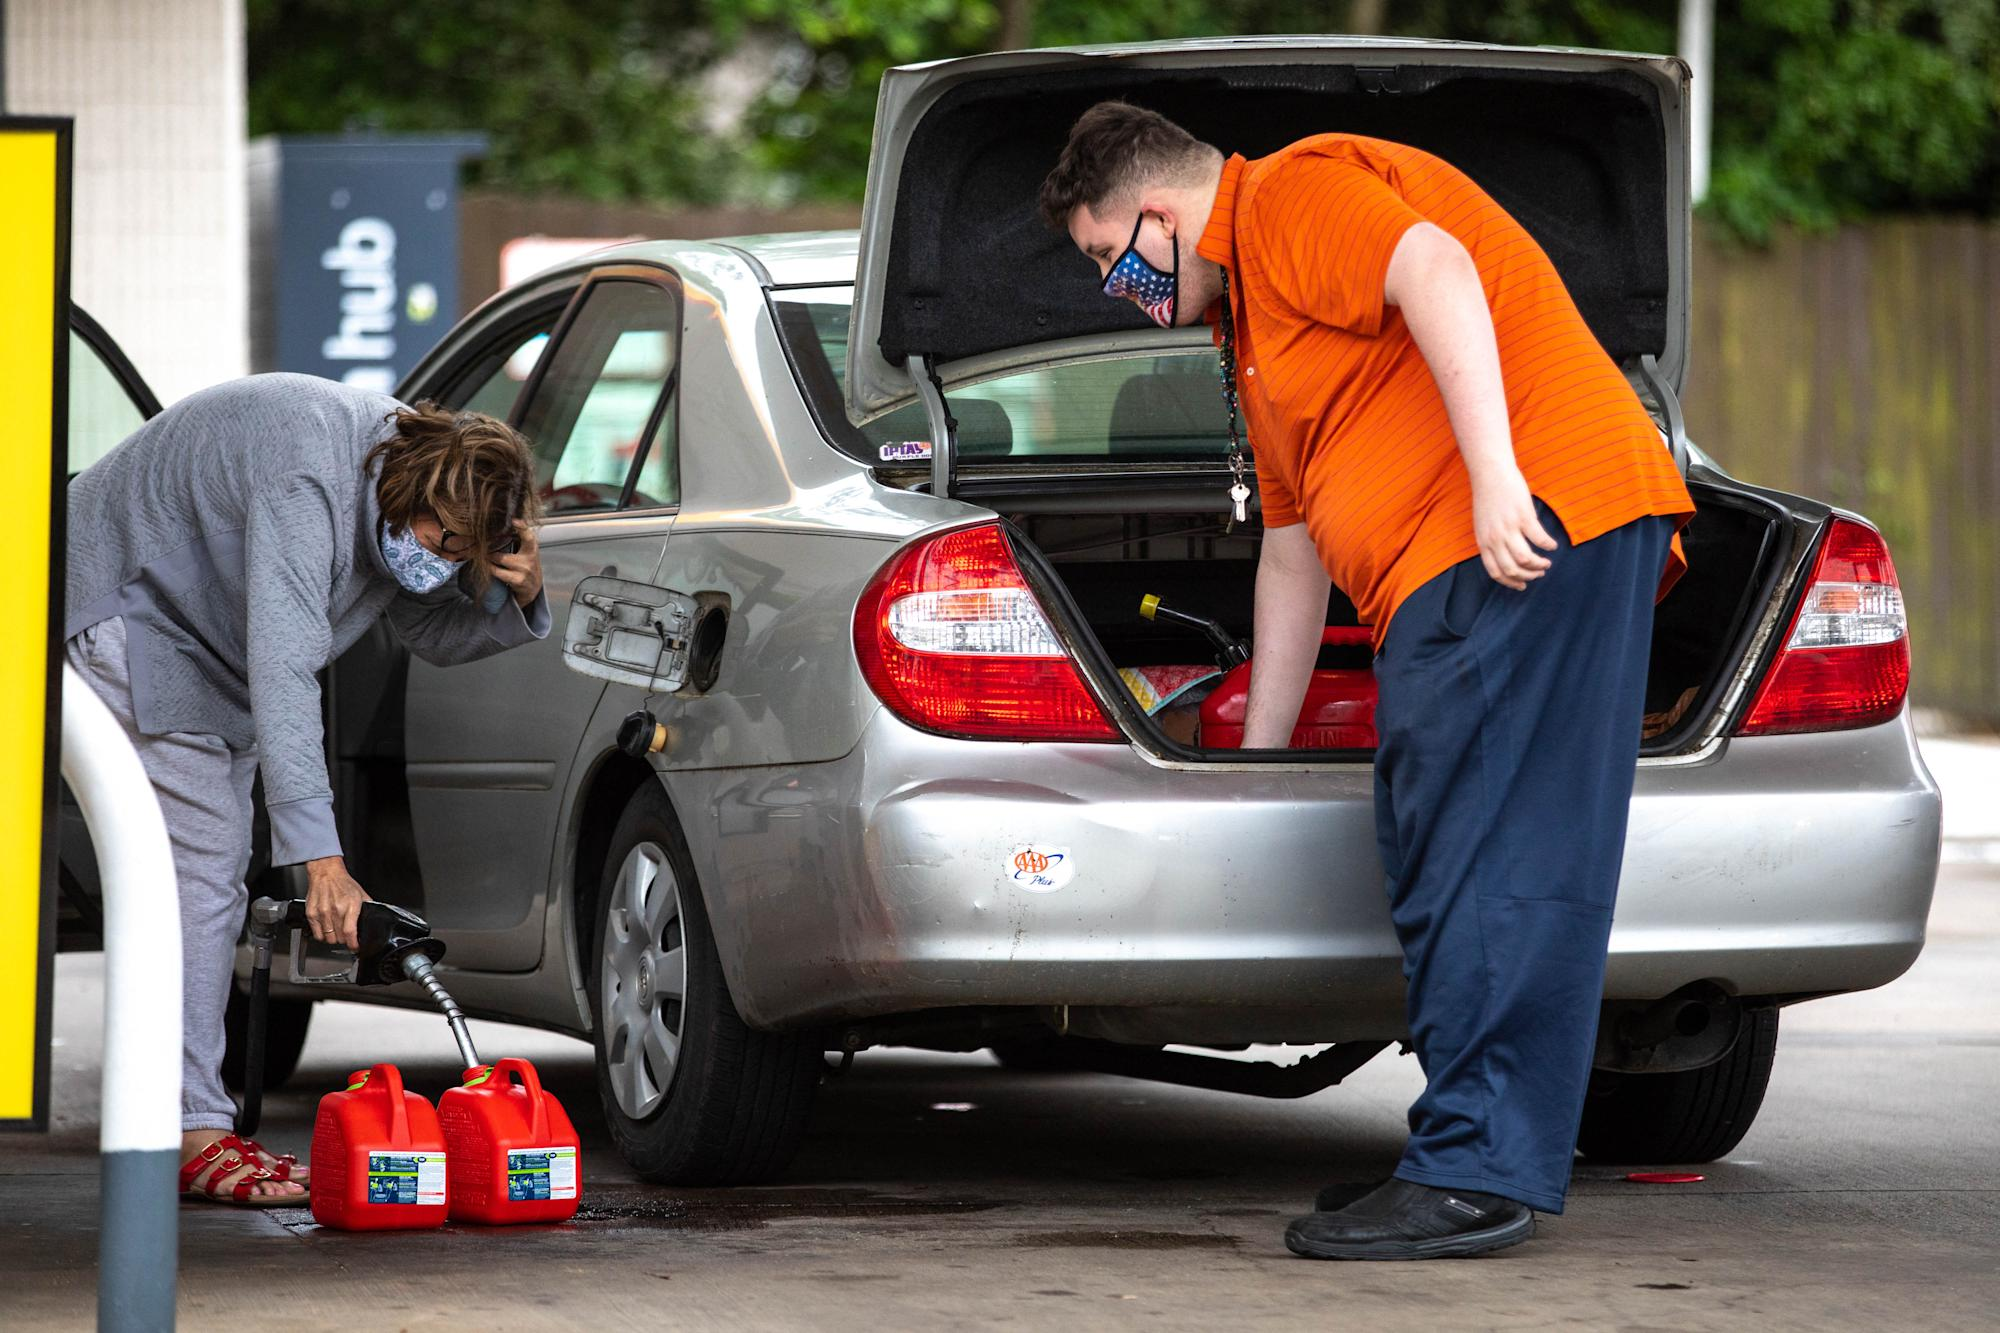 'Do not fill plastic bags with gasoline:' Government warns drivers hoarding fuel